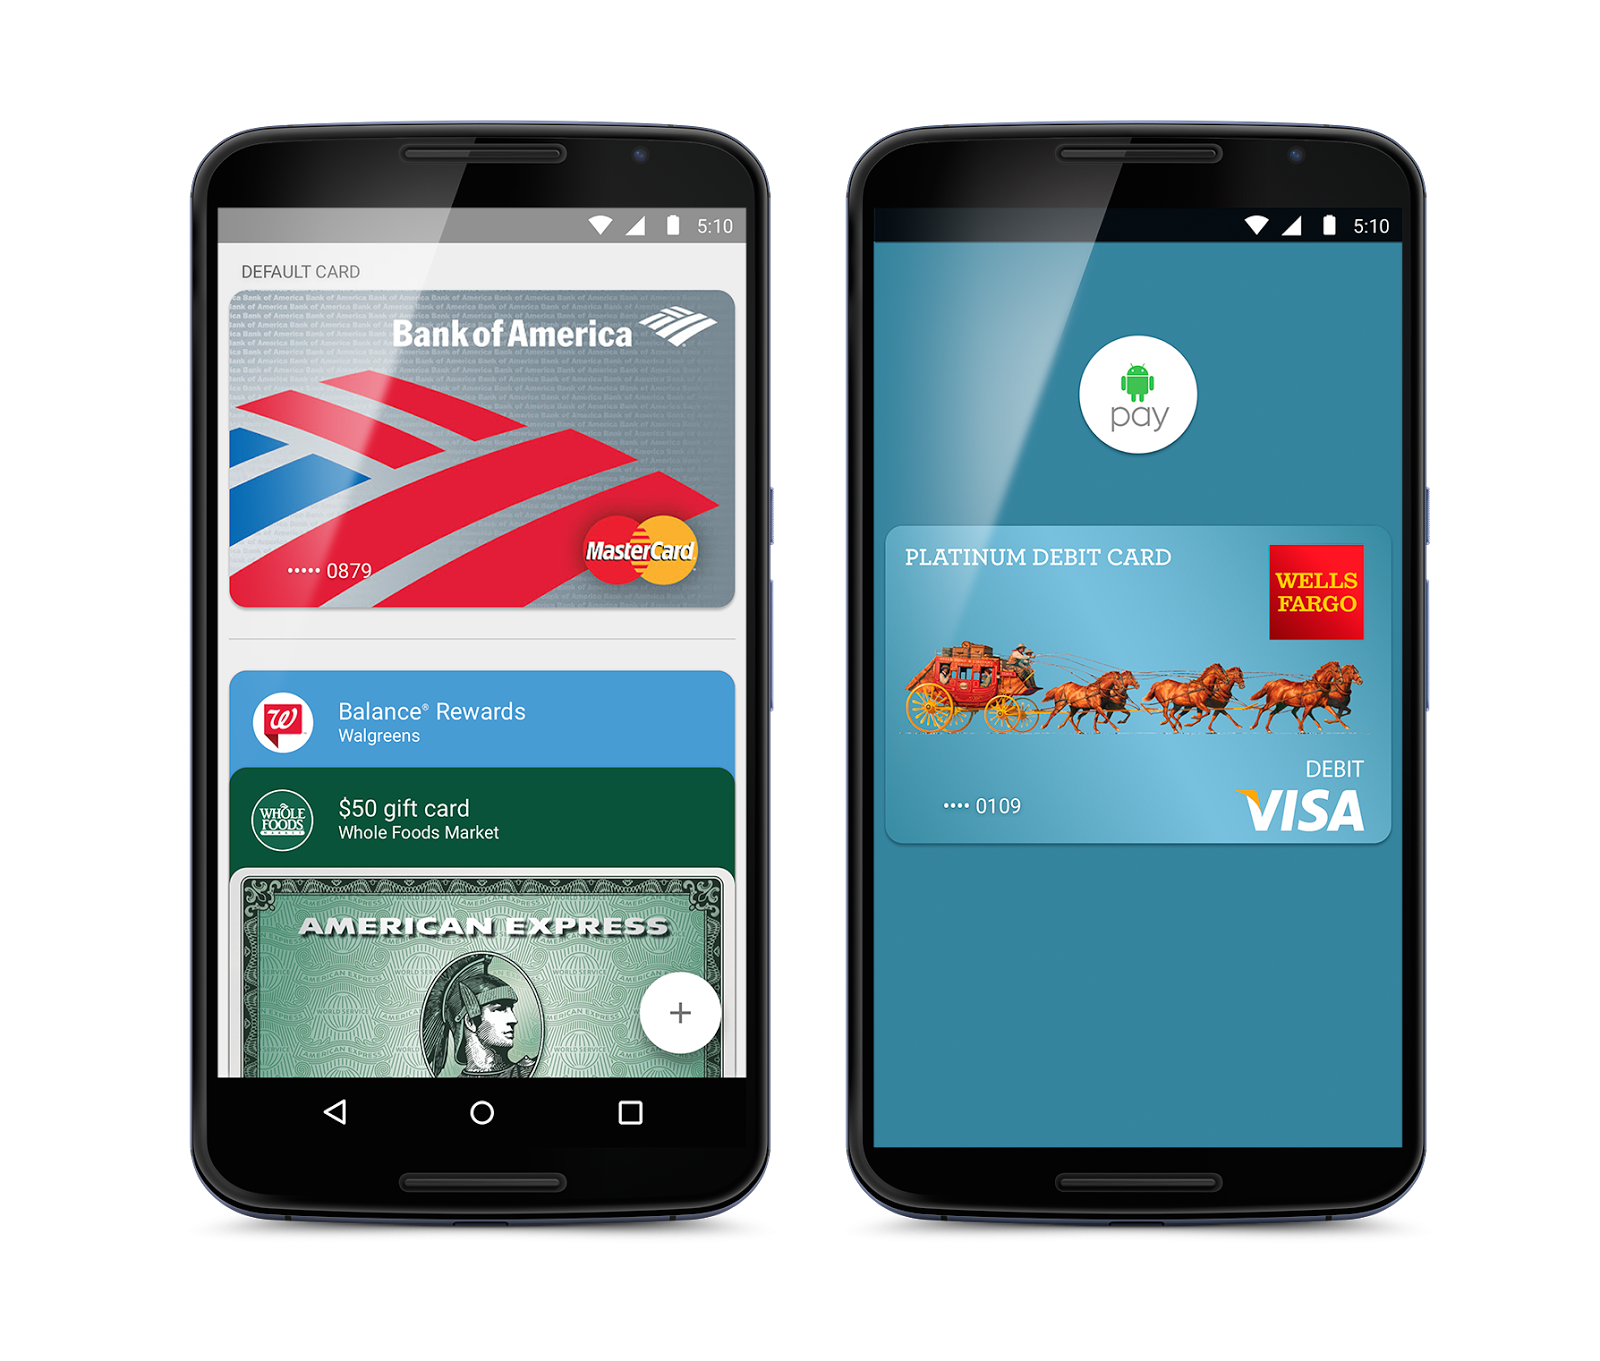 android-pay-is-taking-its-fight-against-apple-pay-international-image-cultofandroidcomwp-contentuploads201509Android-Pay-png